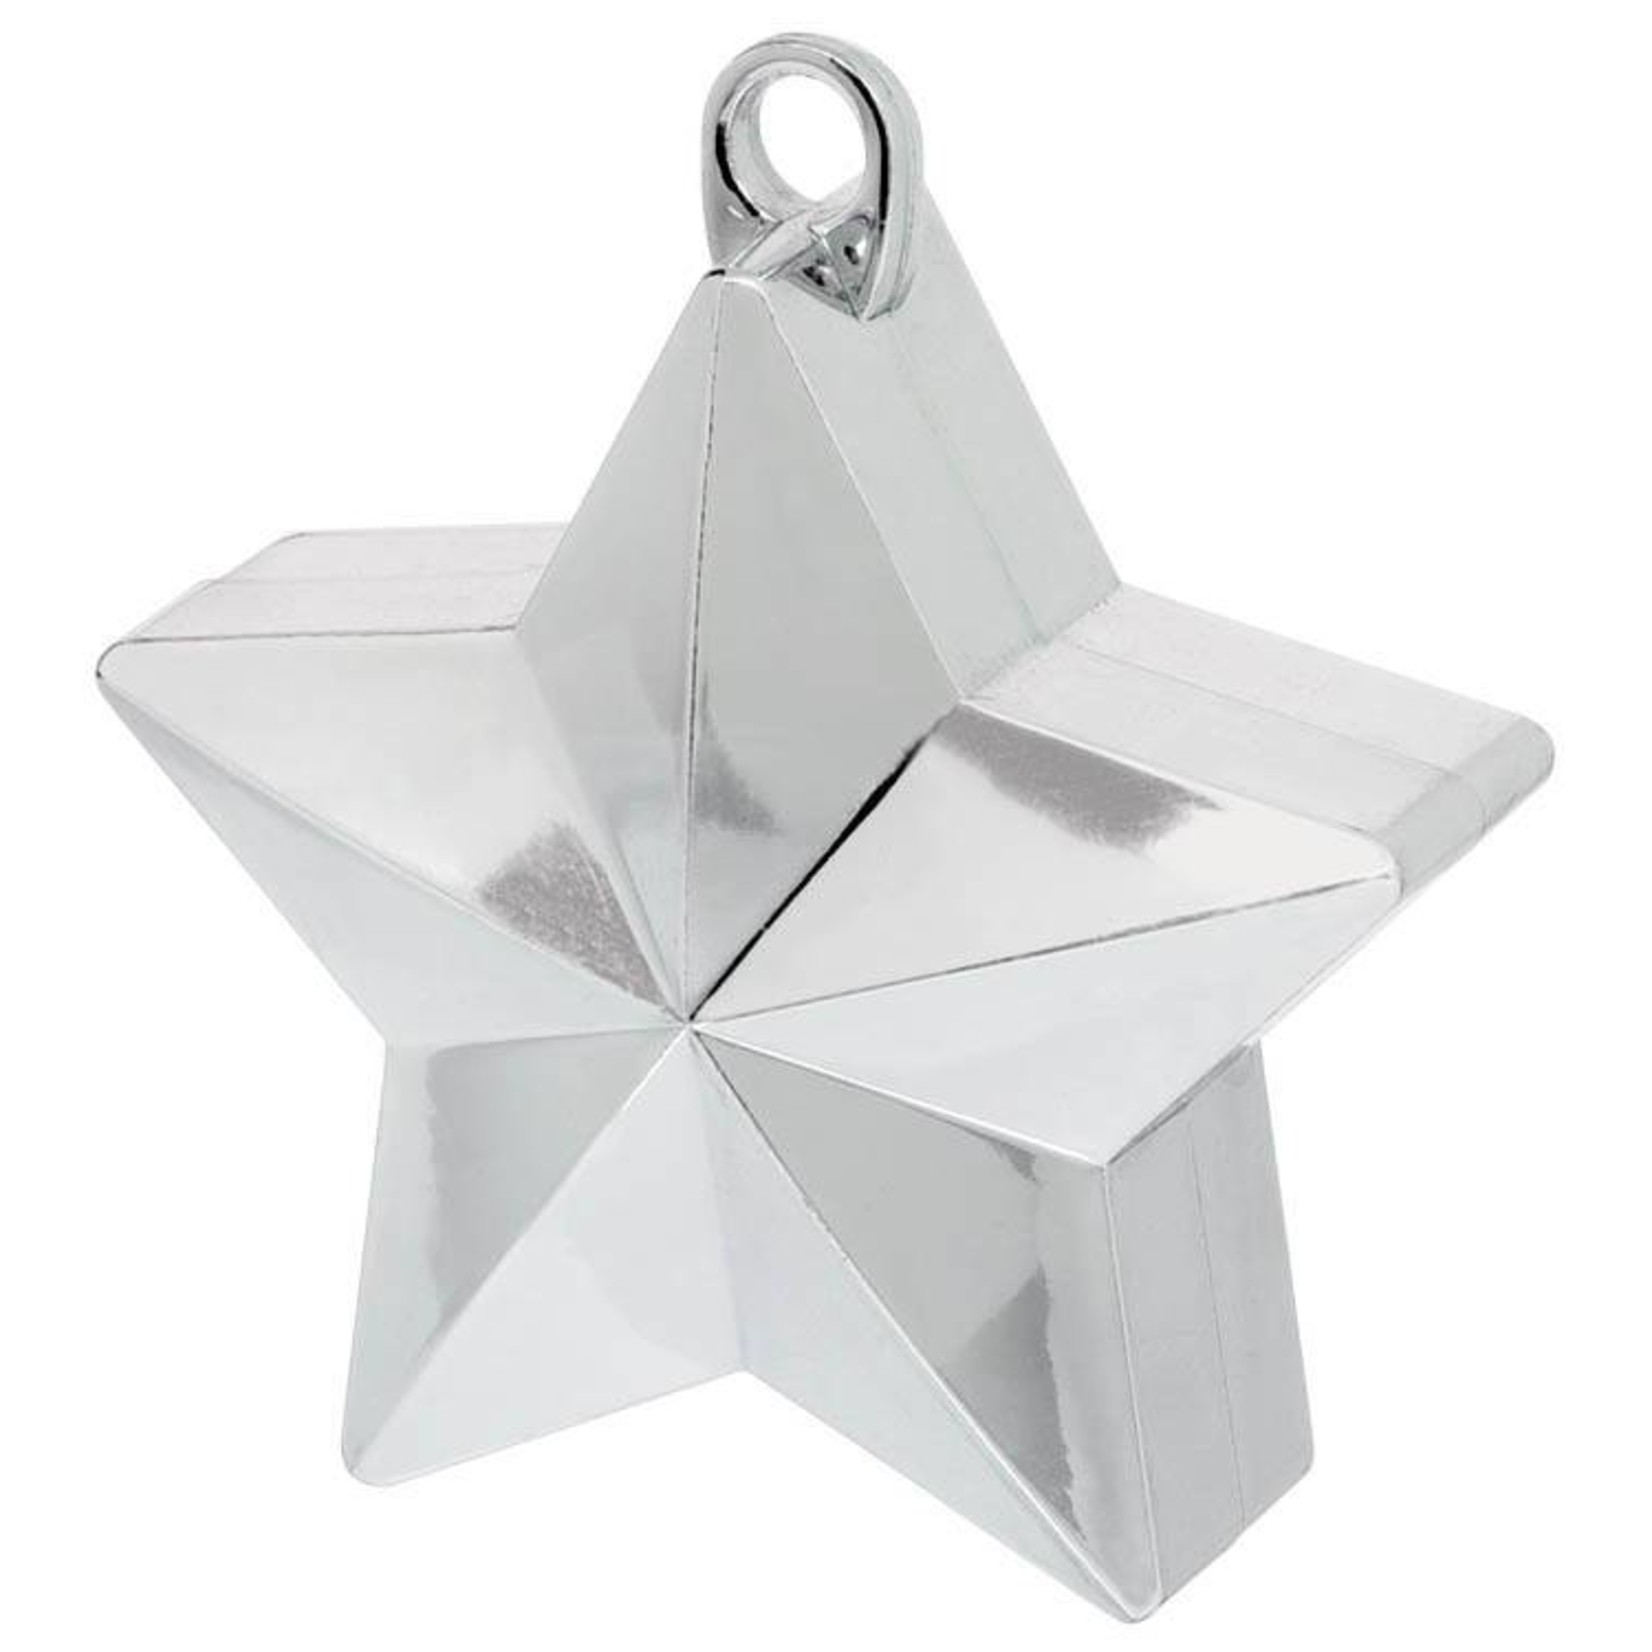 Balloon Weight-Star Electroplated-Silver-6oz